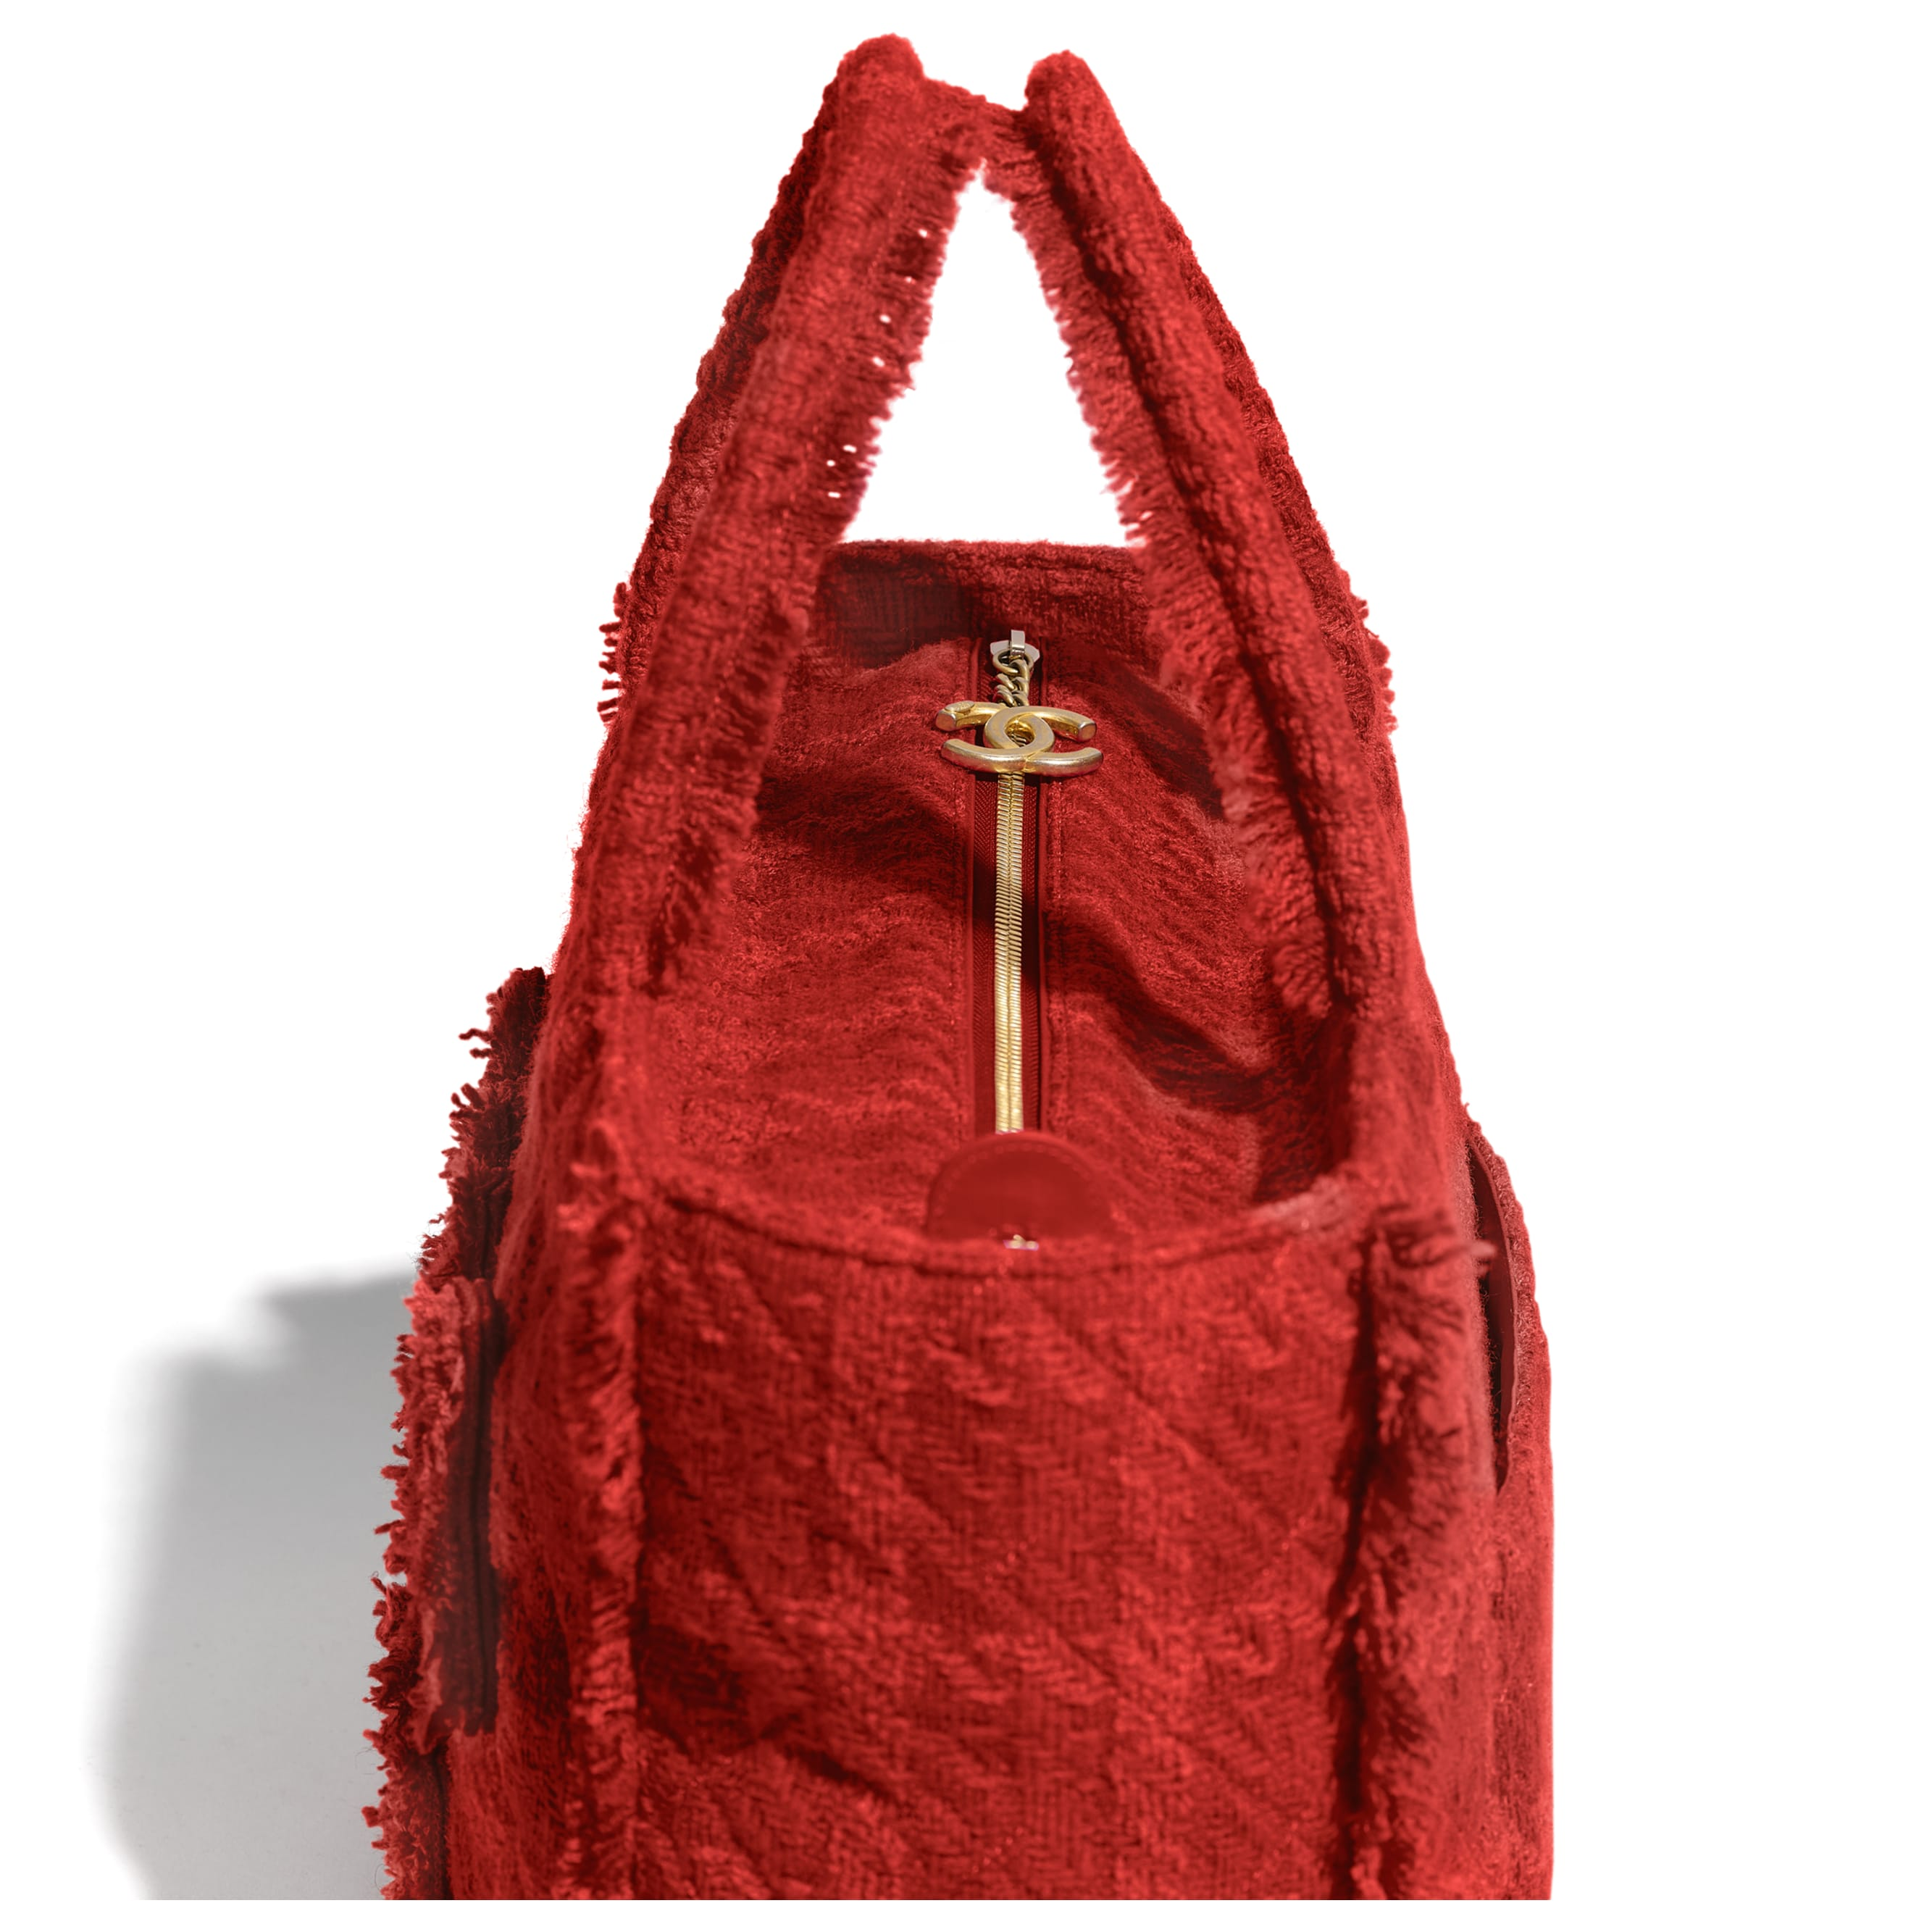 Large Zipped Tote - Red - Wool Tweed & Gold-Tone Metal - Extra view - see standard sized version